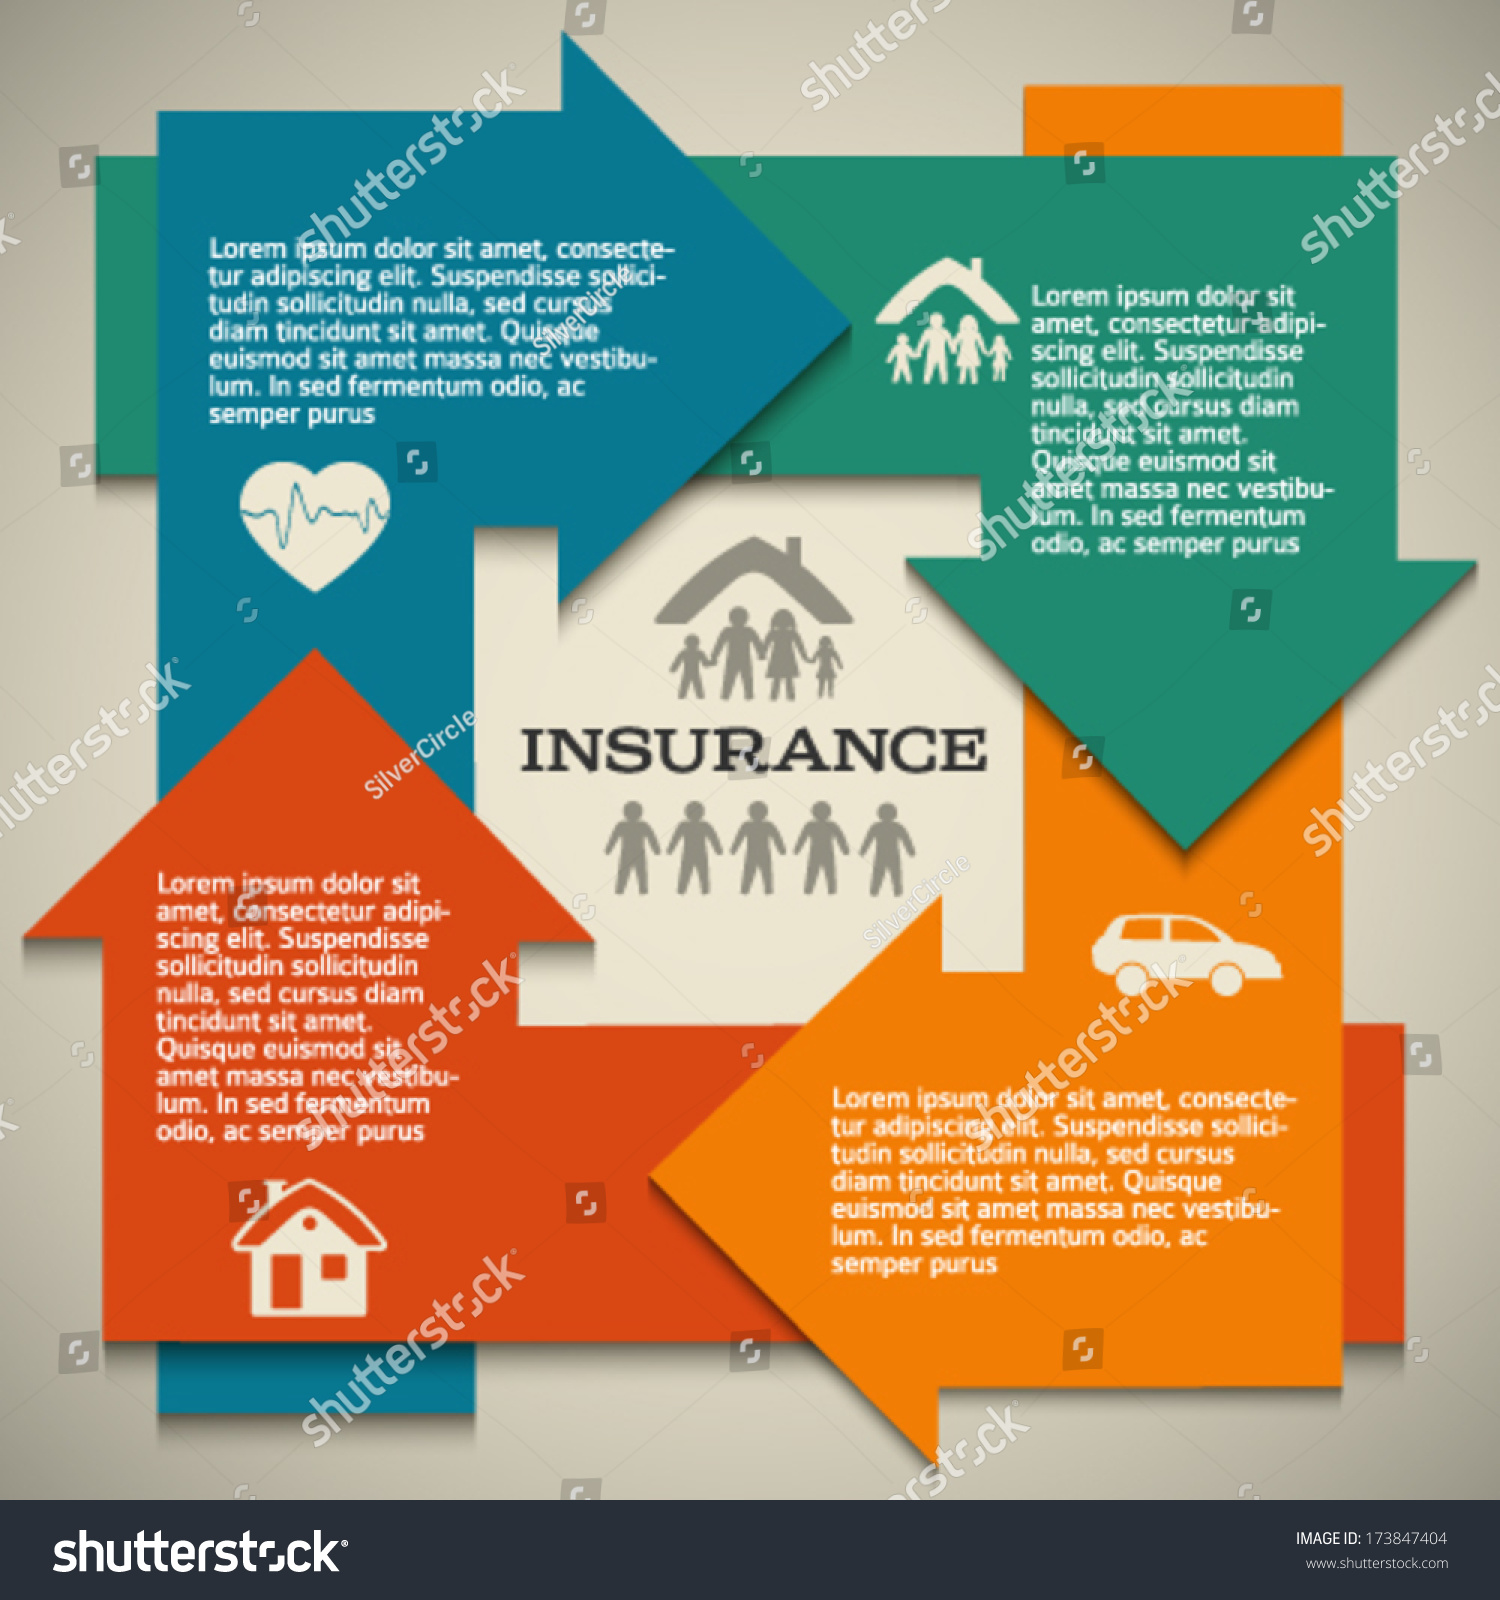 Insurance on stock options